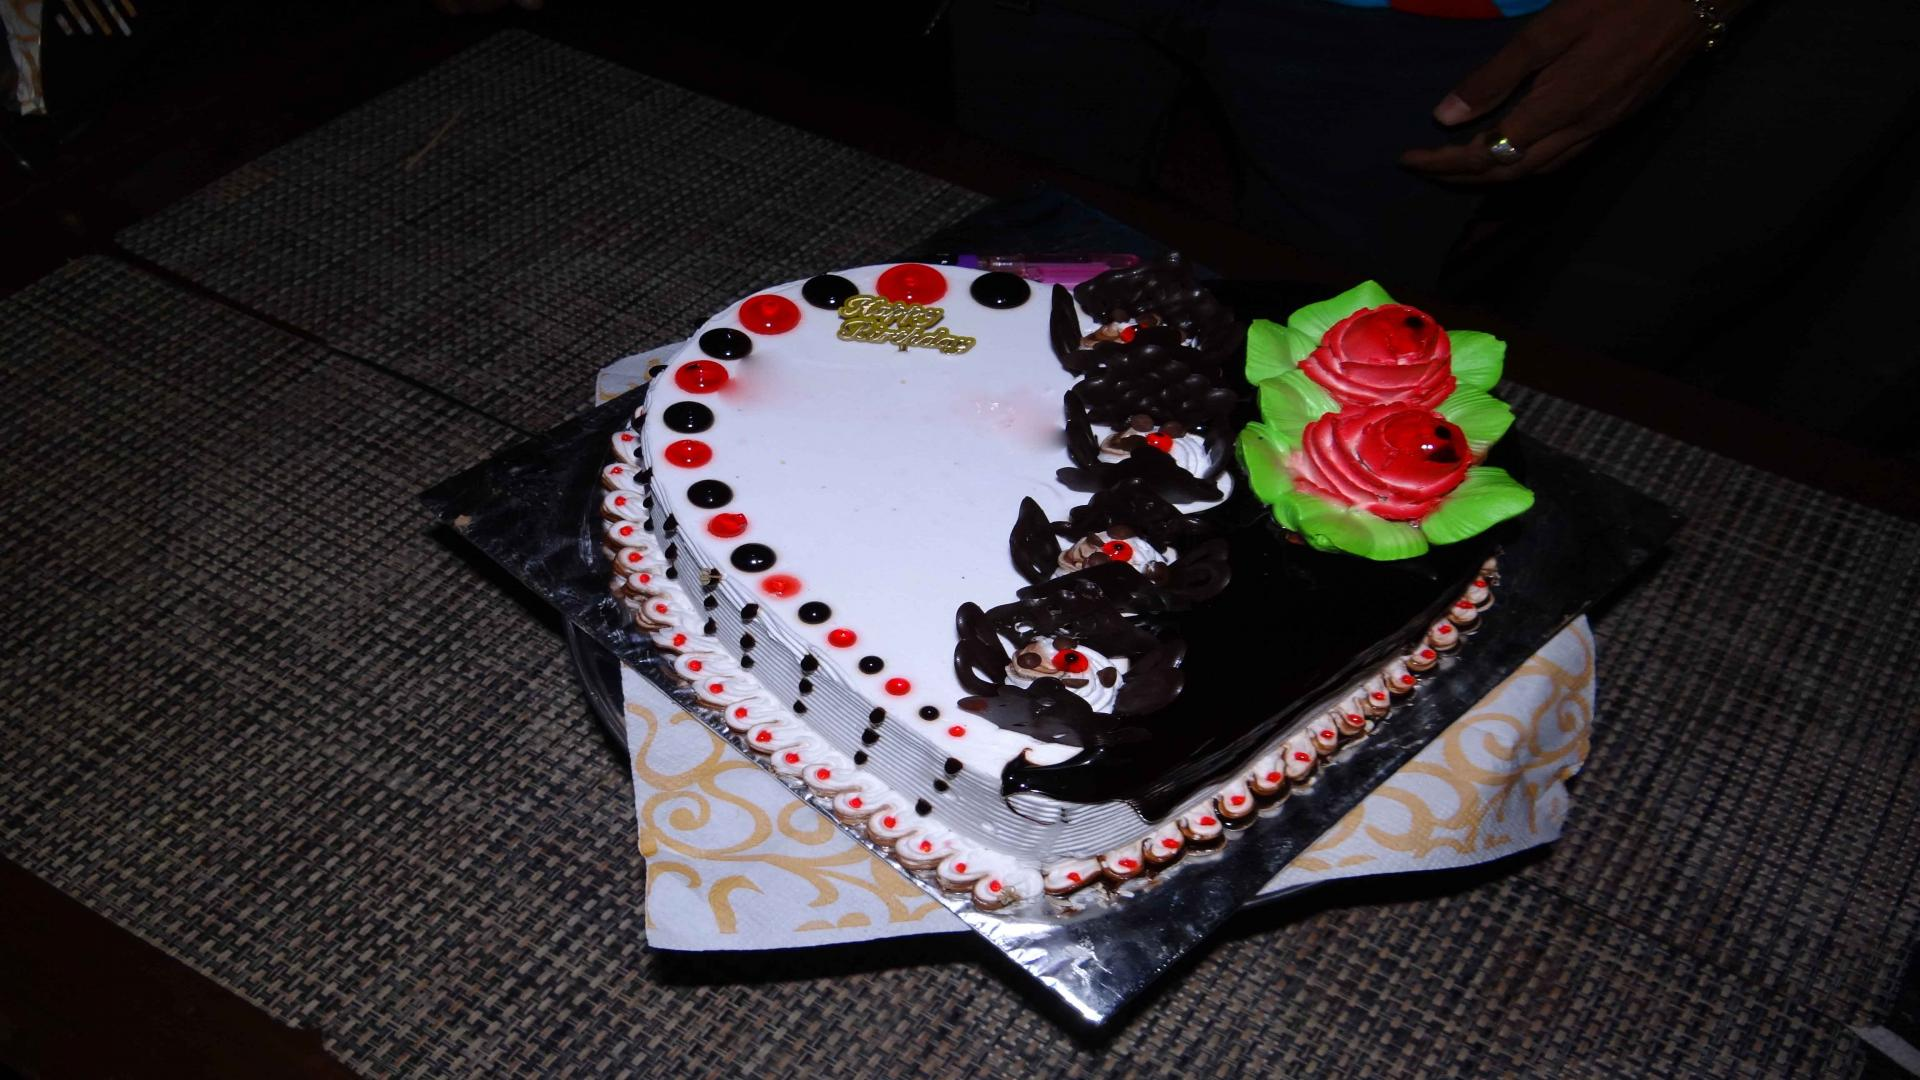 Birthday Cake Image Collection For Free Download 1920x1080